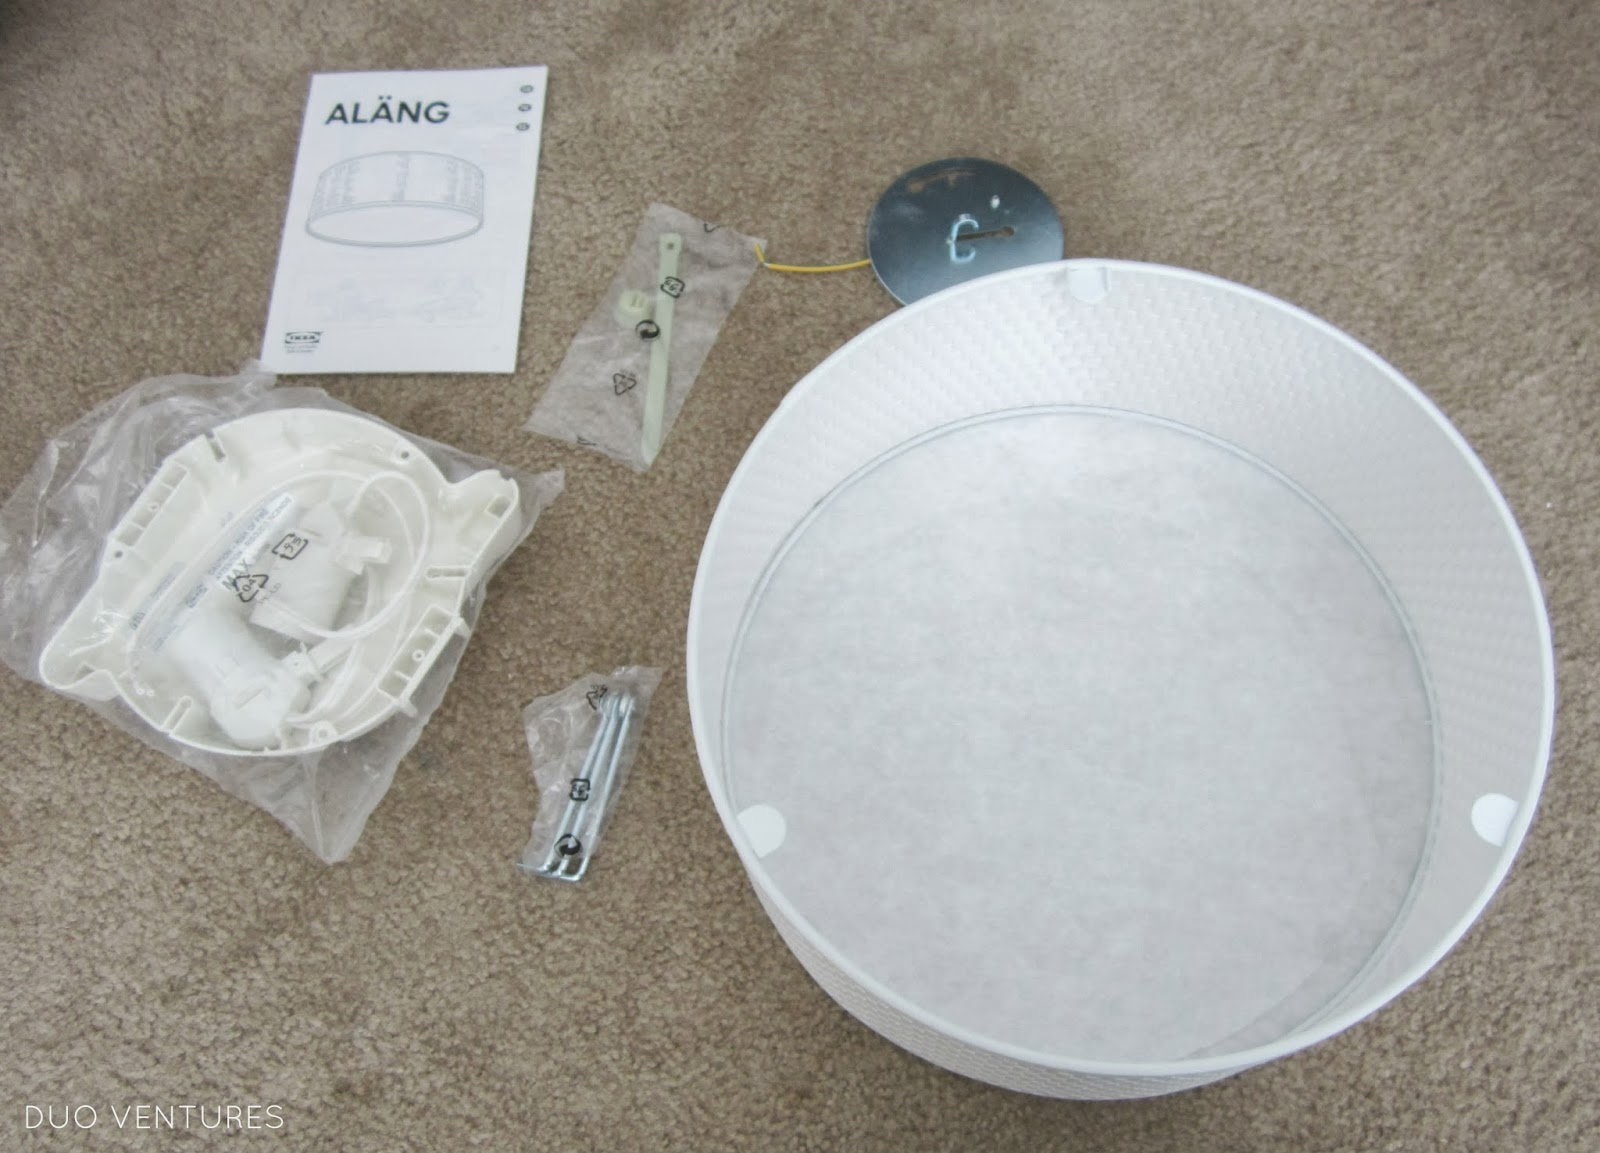 Duo Ventures: How to Install: IKEA ALANG Ceiling Lamp